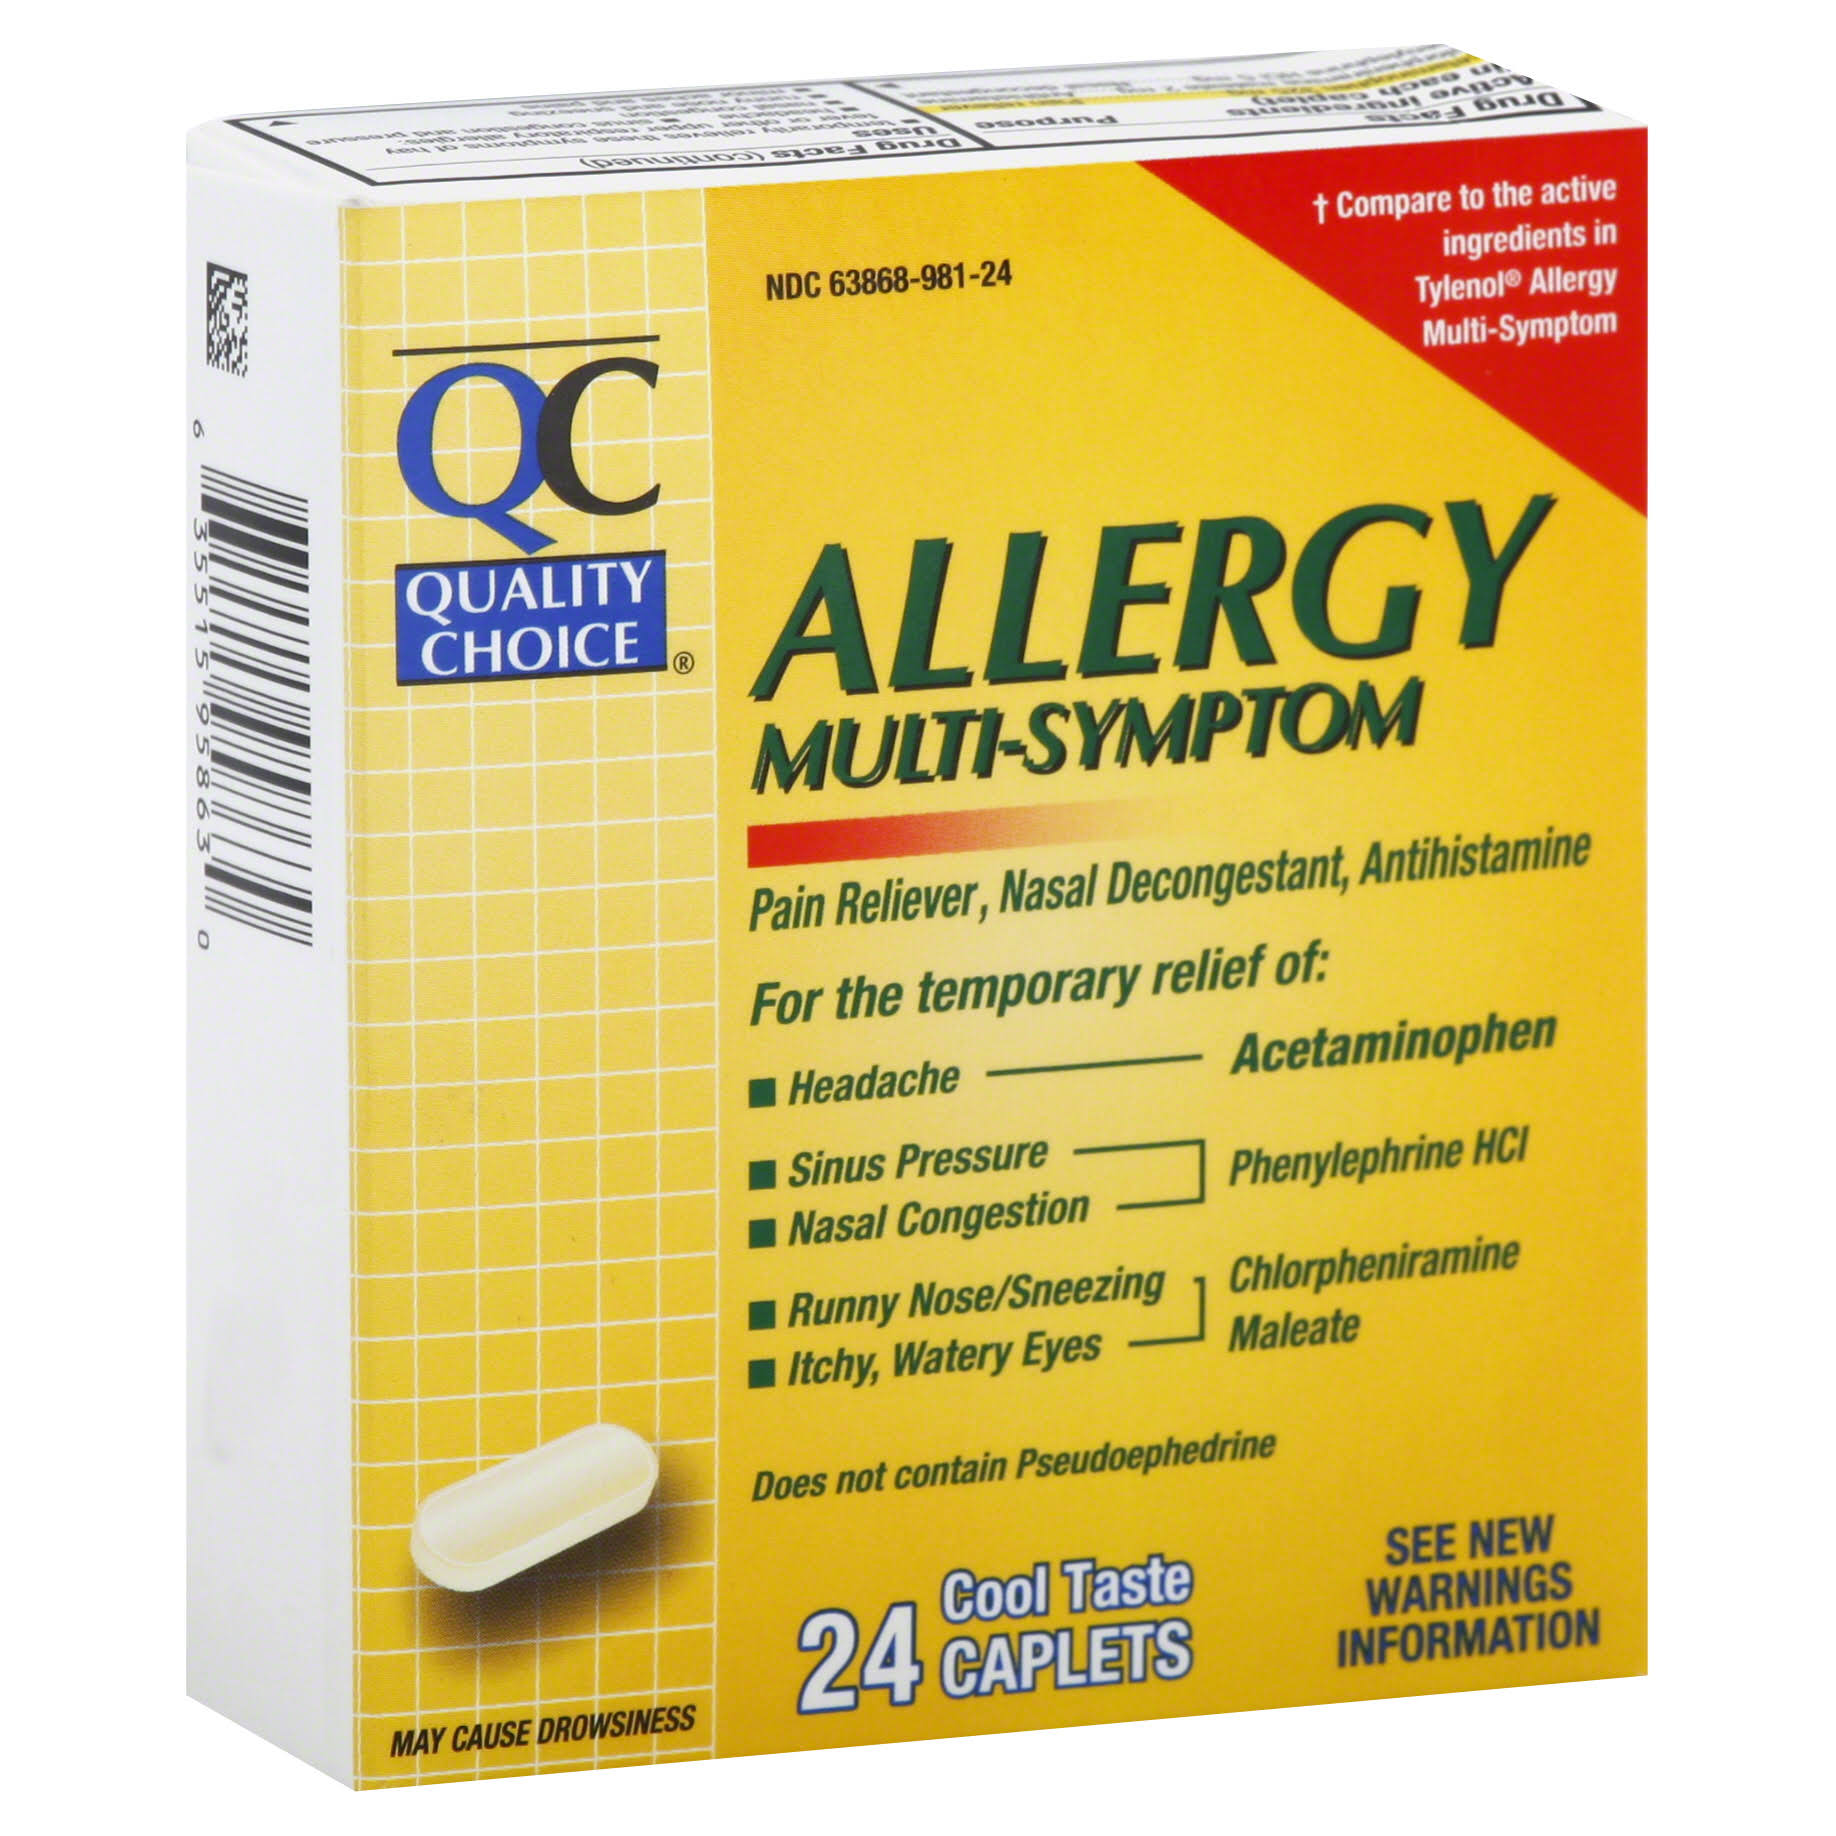 Quality Choice Allergy, Multi-Symptom, Cool Taste Caplets - 24 caplets